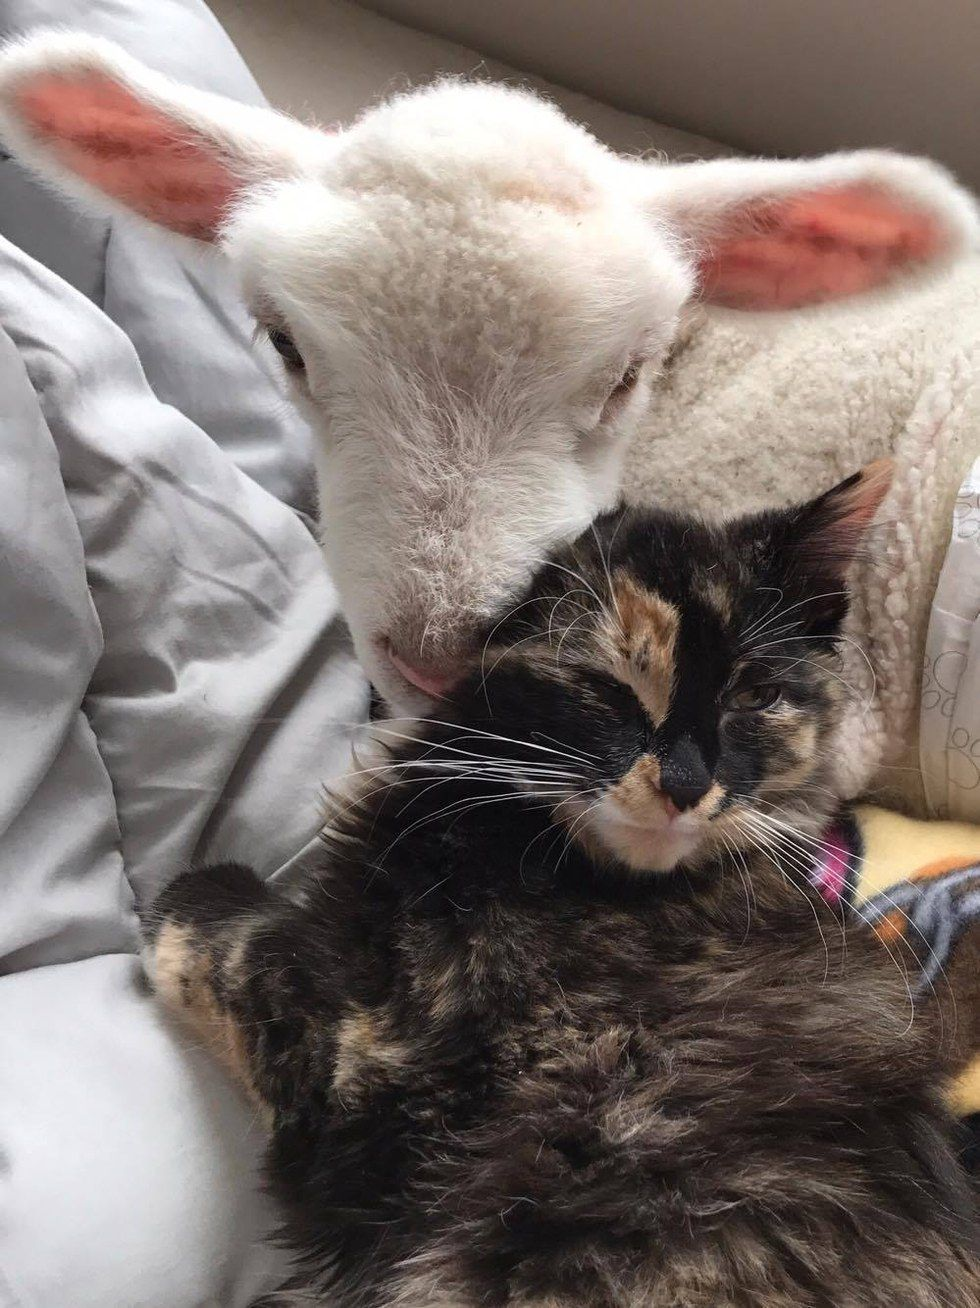 Image of: National Geographic Rescue Cat Helps Save Sick Little Lambs Life Goodreads Rescue Cat Helps Save Sick Little Lambs Life Animal Loveunlikely